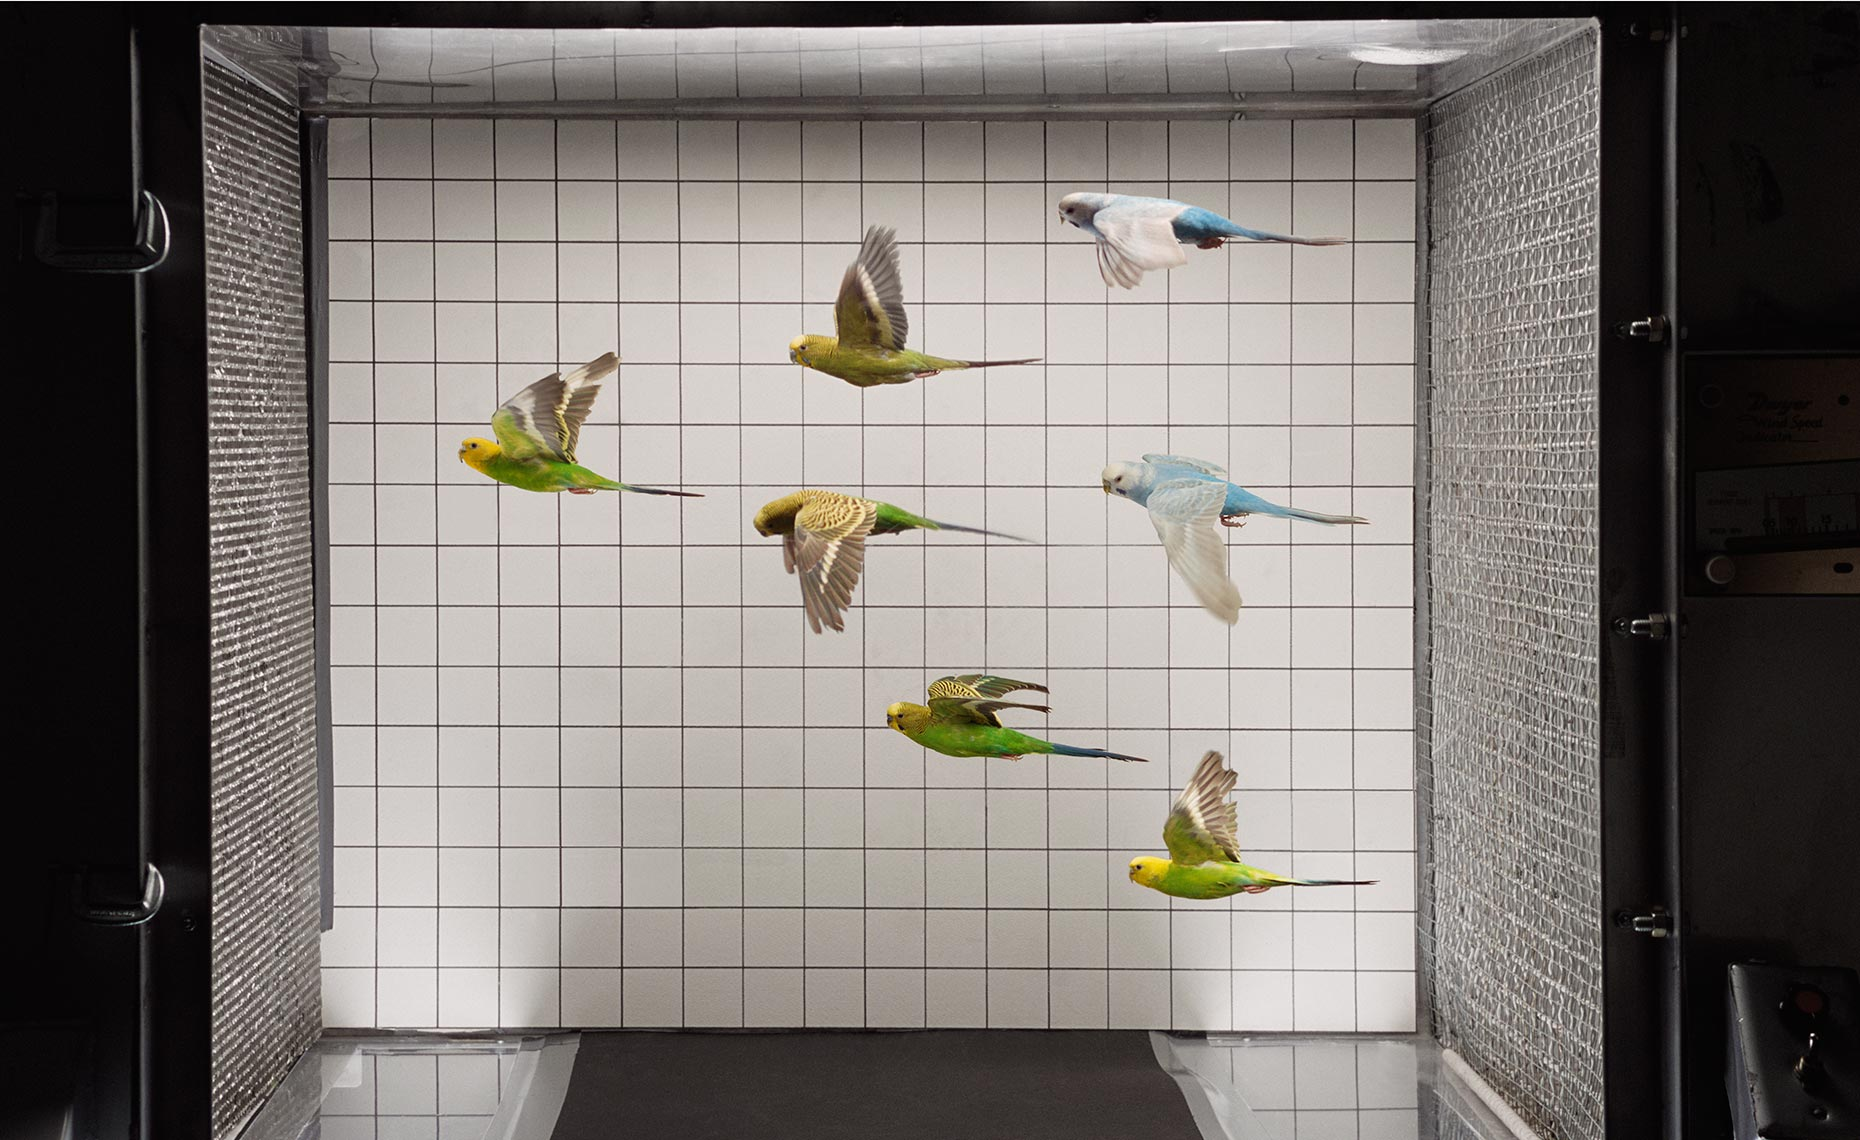 Birds In Wind Tunnel